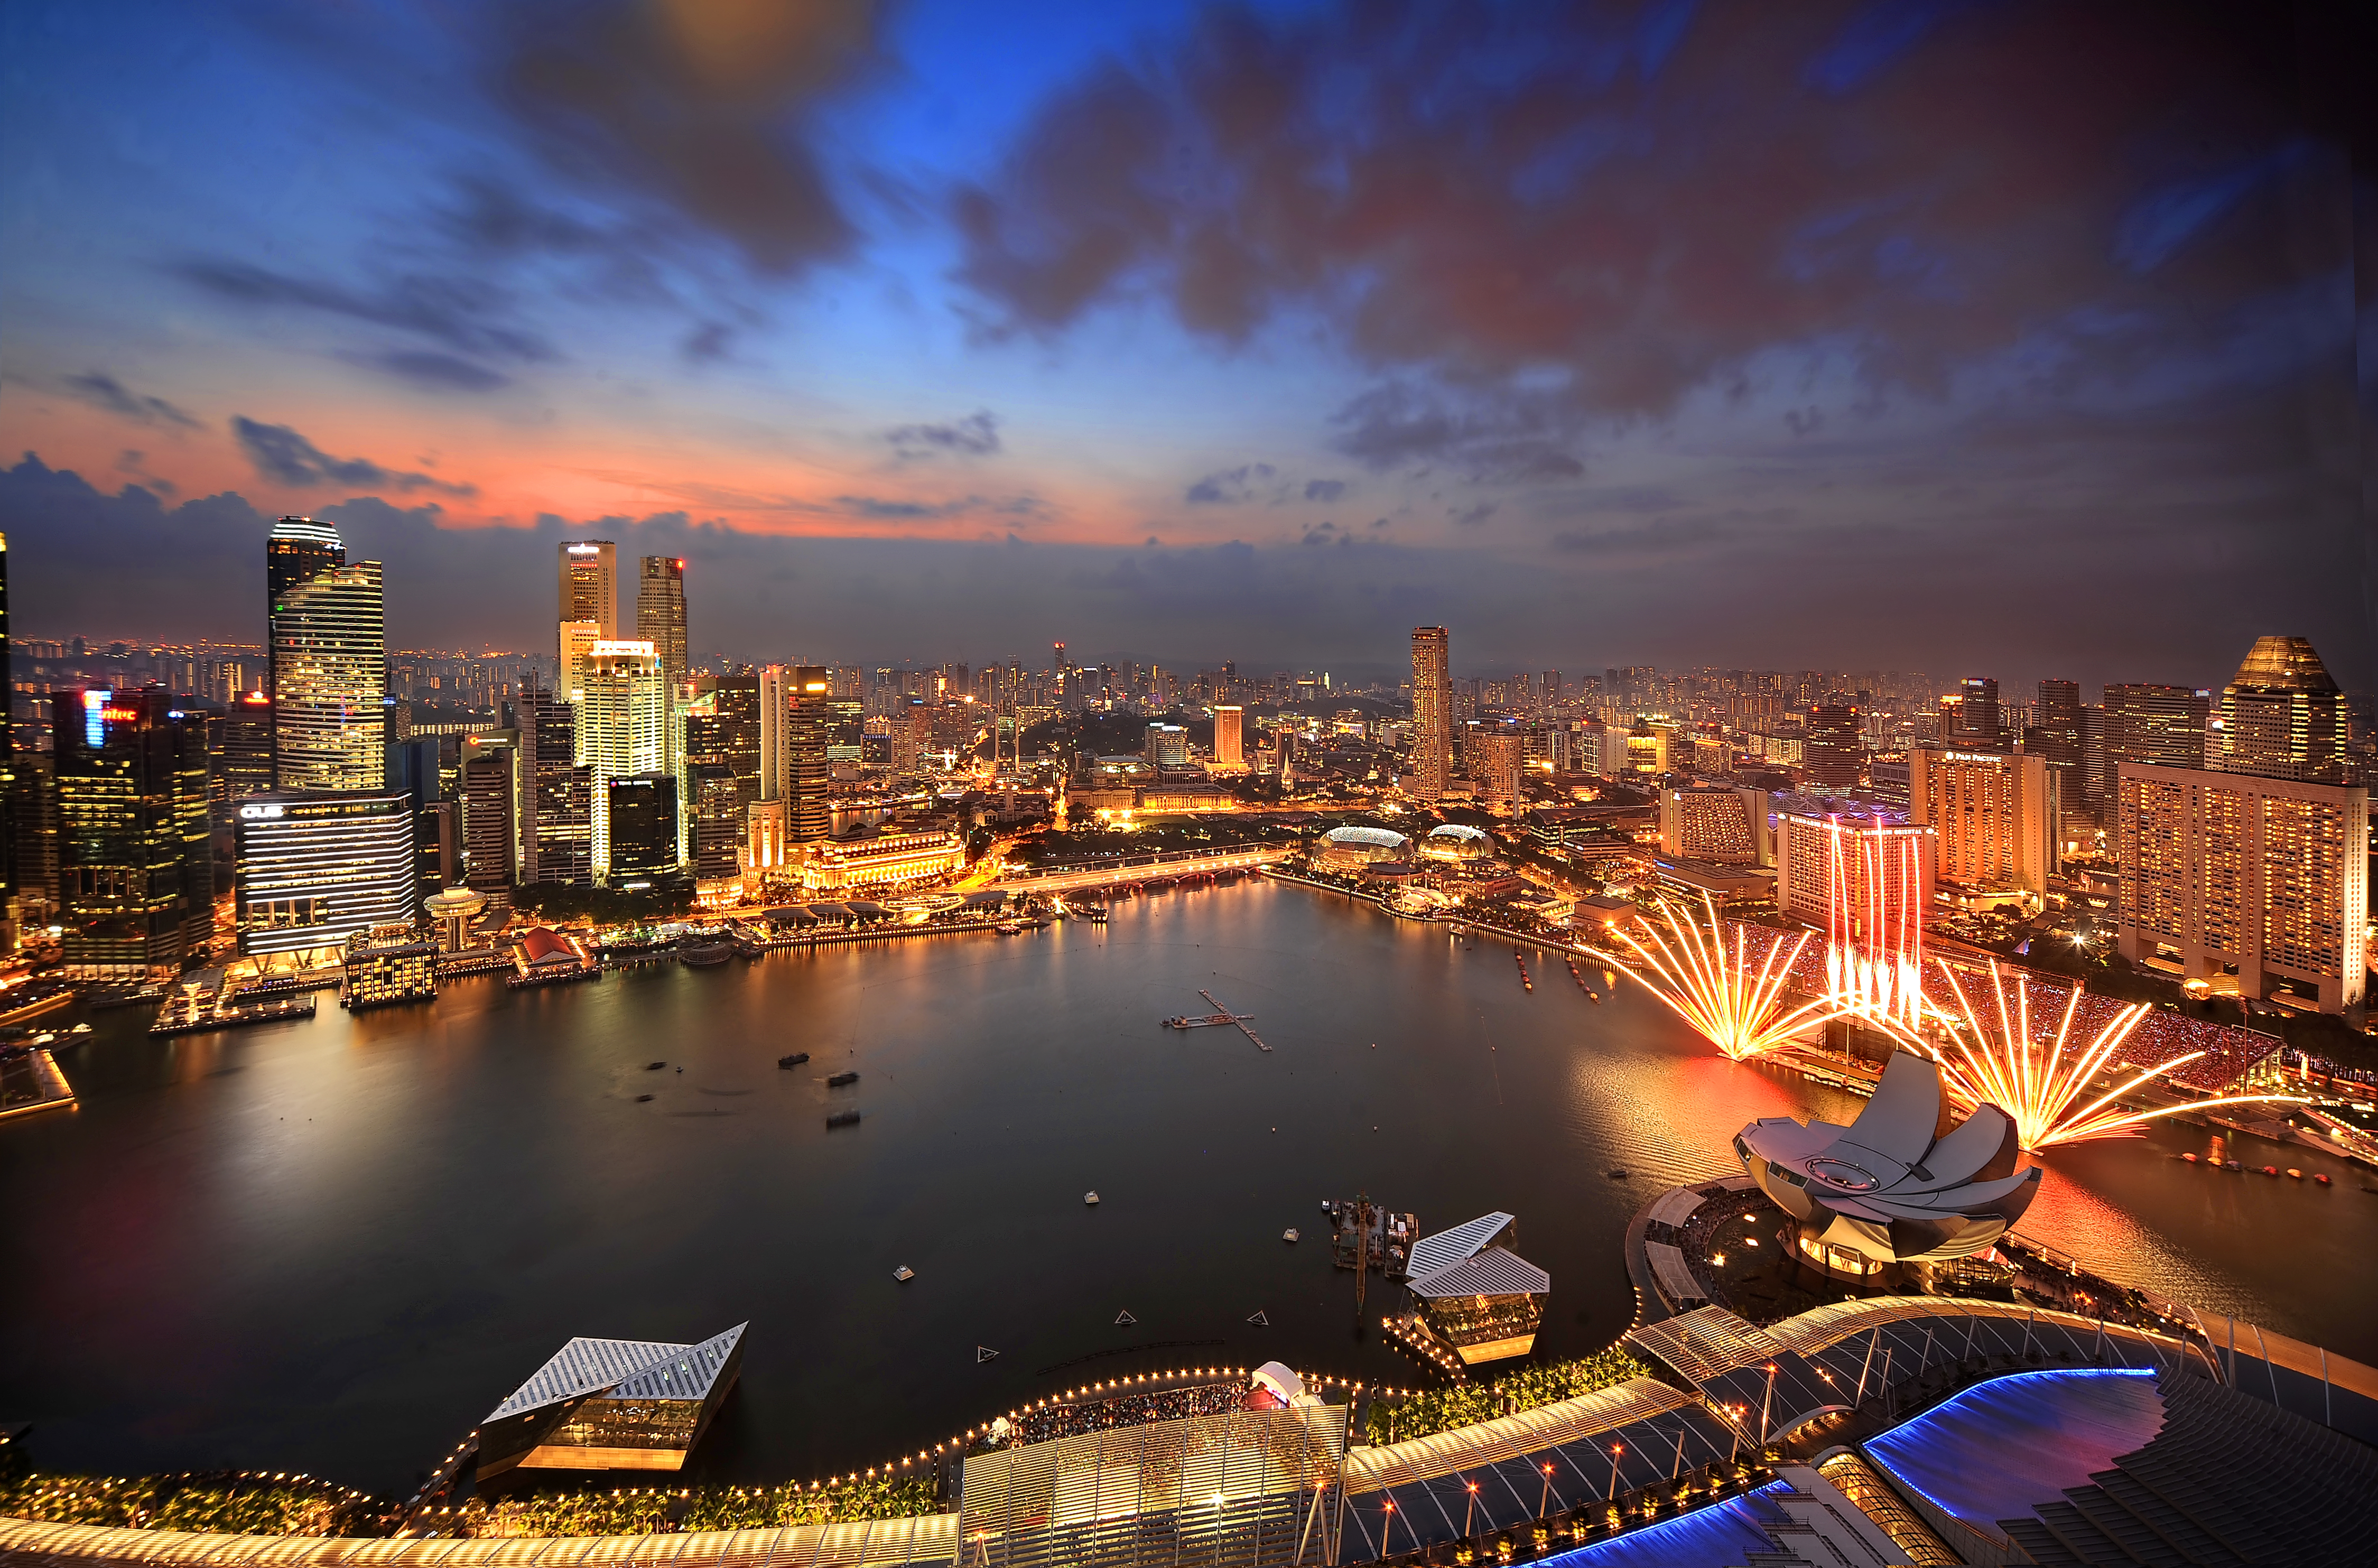 Marina Bay Sands by night fireworks for Singapore Grand Prix - Singapore Grand Prix Packages